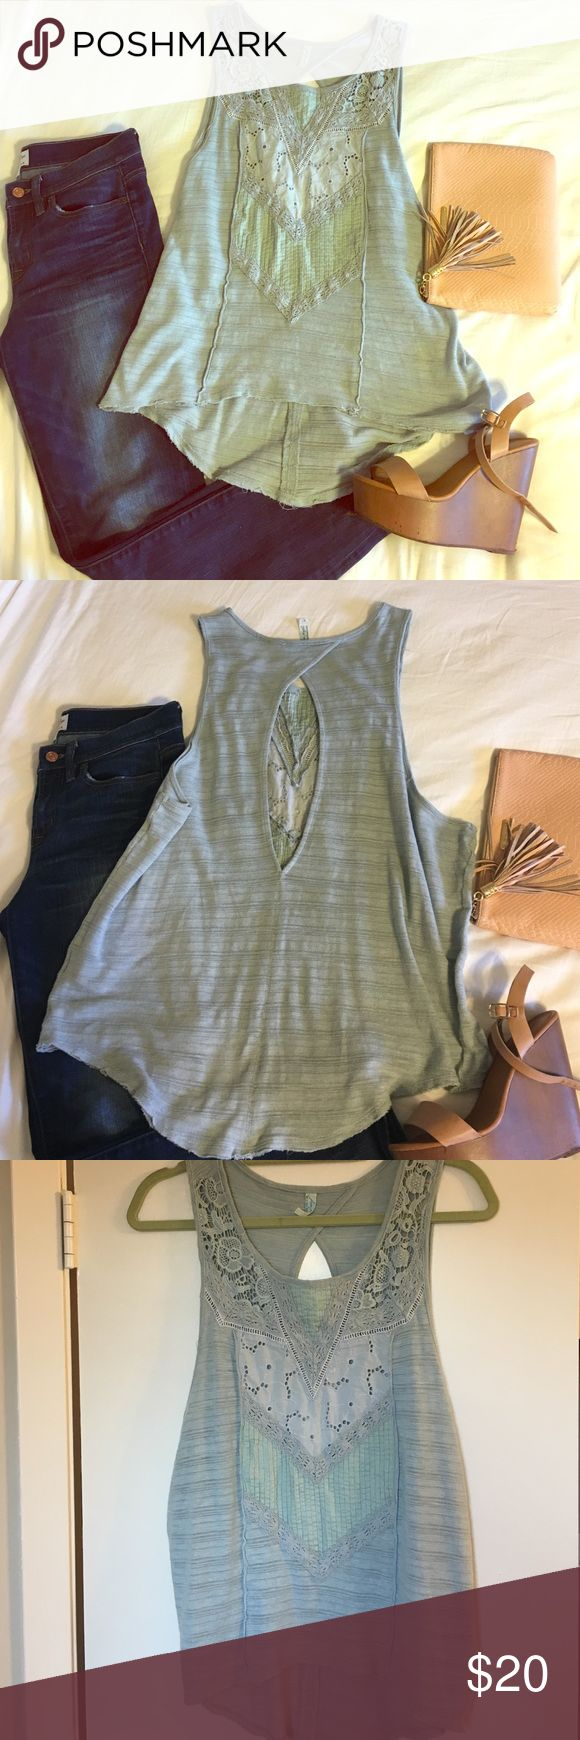 FREE PEOPLE oversized pistachio green tank Beautiful detailed top for casual daytime or festive nights out! Looks great over bandeau top or bralette. Like new, lightly worn. Large keyhole back. *ft. jcrew jeans also for sale* Free People Tops Blouses